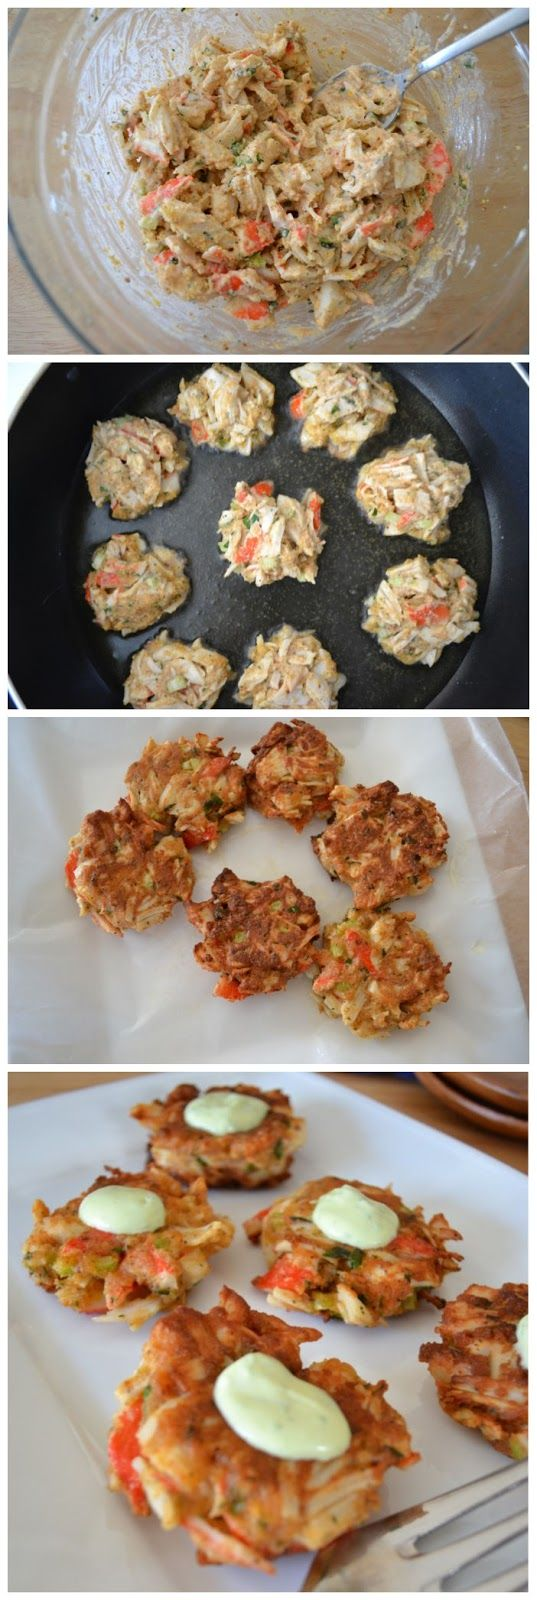 Latest Food: Gluten Free Crab Cakes - Incredibly easy, delicious ...